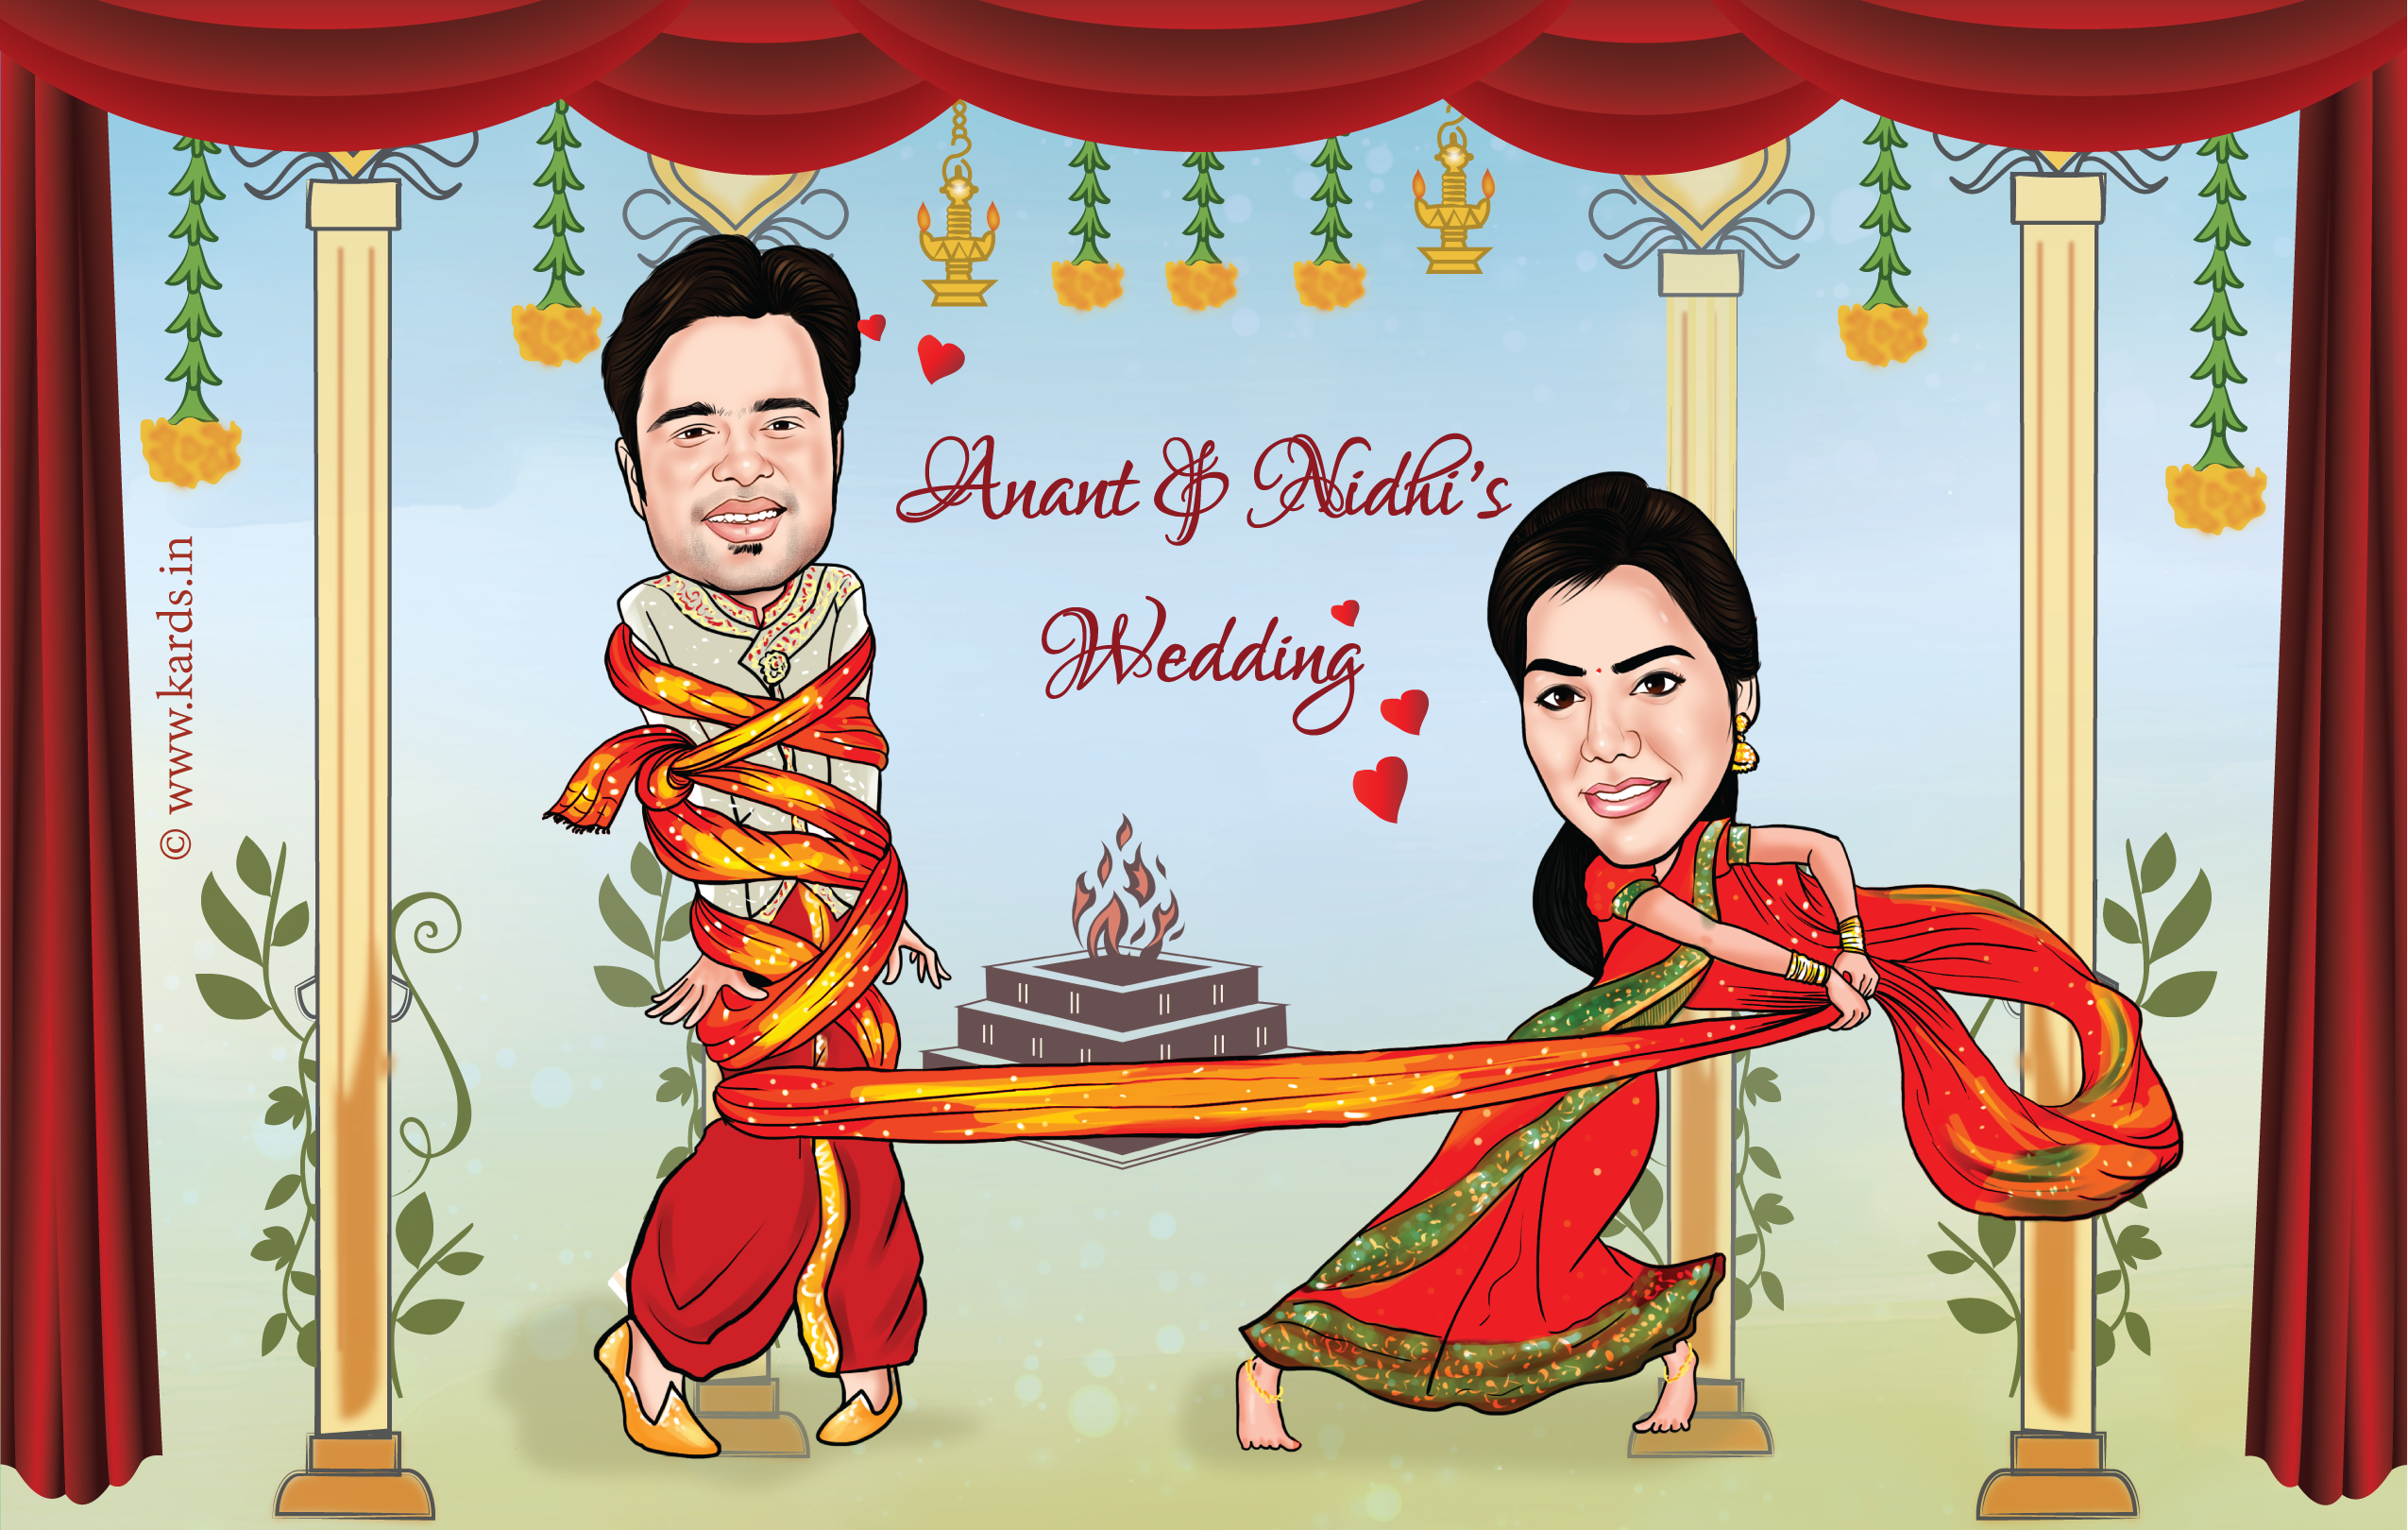 A Cute And Funny Caricature Of A Couple Where The Bride Gets The Groom Knotted For Funny Wedding Invitations Caricature Wedding Invitations Caricature Wedding